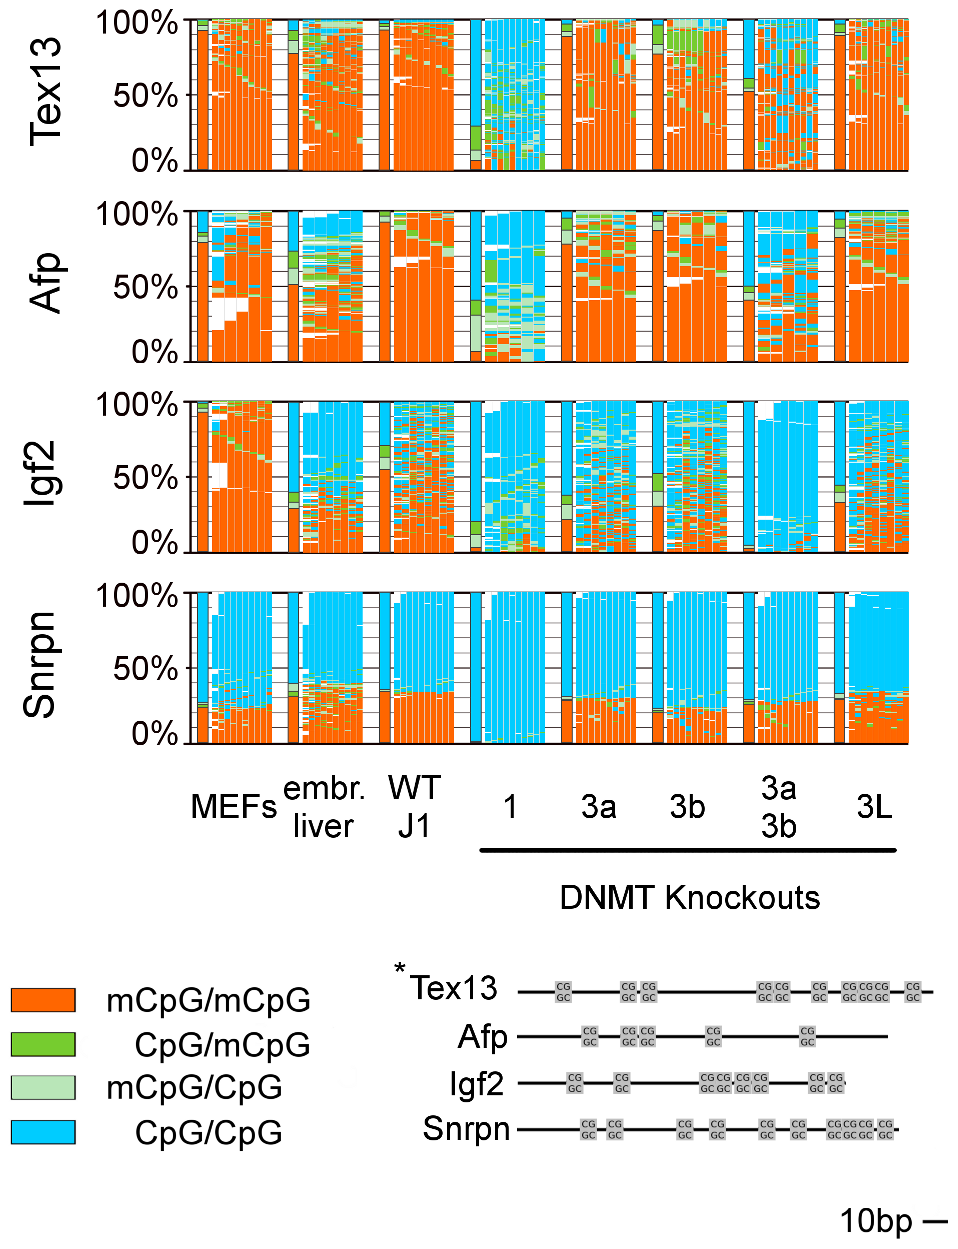 Methylation pattern of 4 single copy genes in WT ESCs, embryonic liver, and MEFs and in Dnmt KO ESCs.